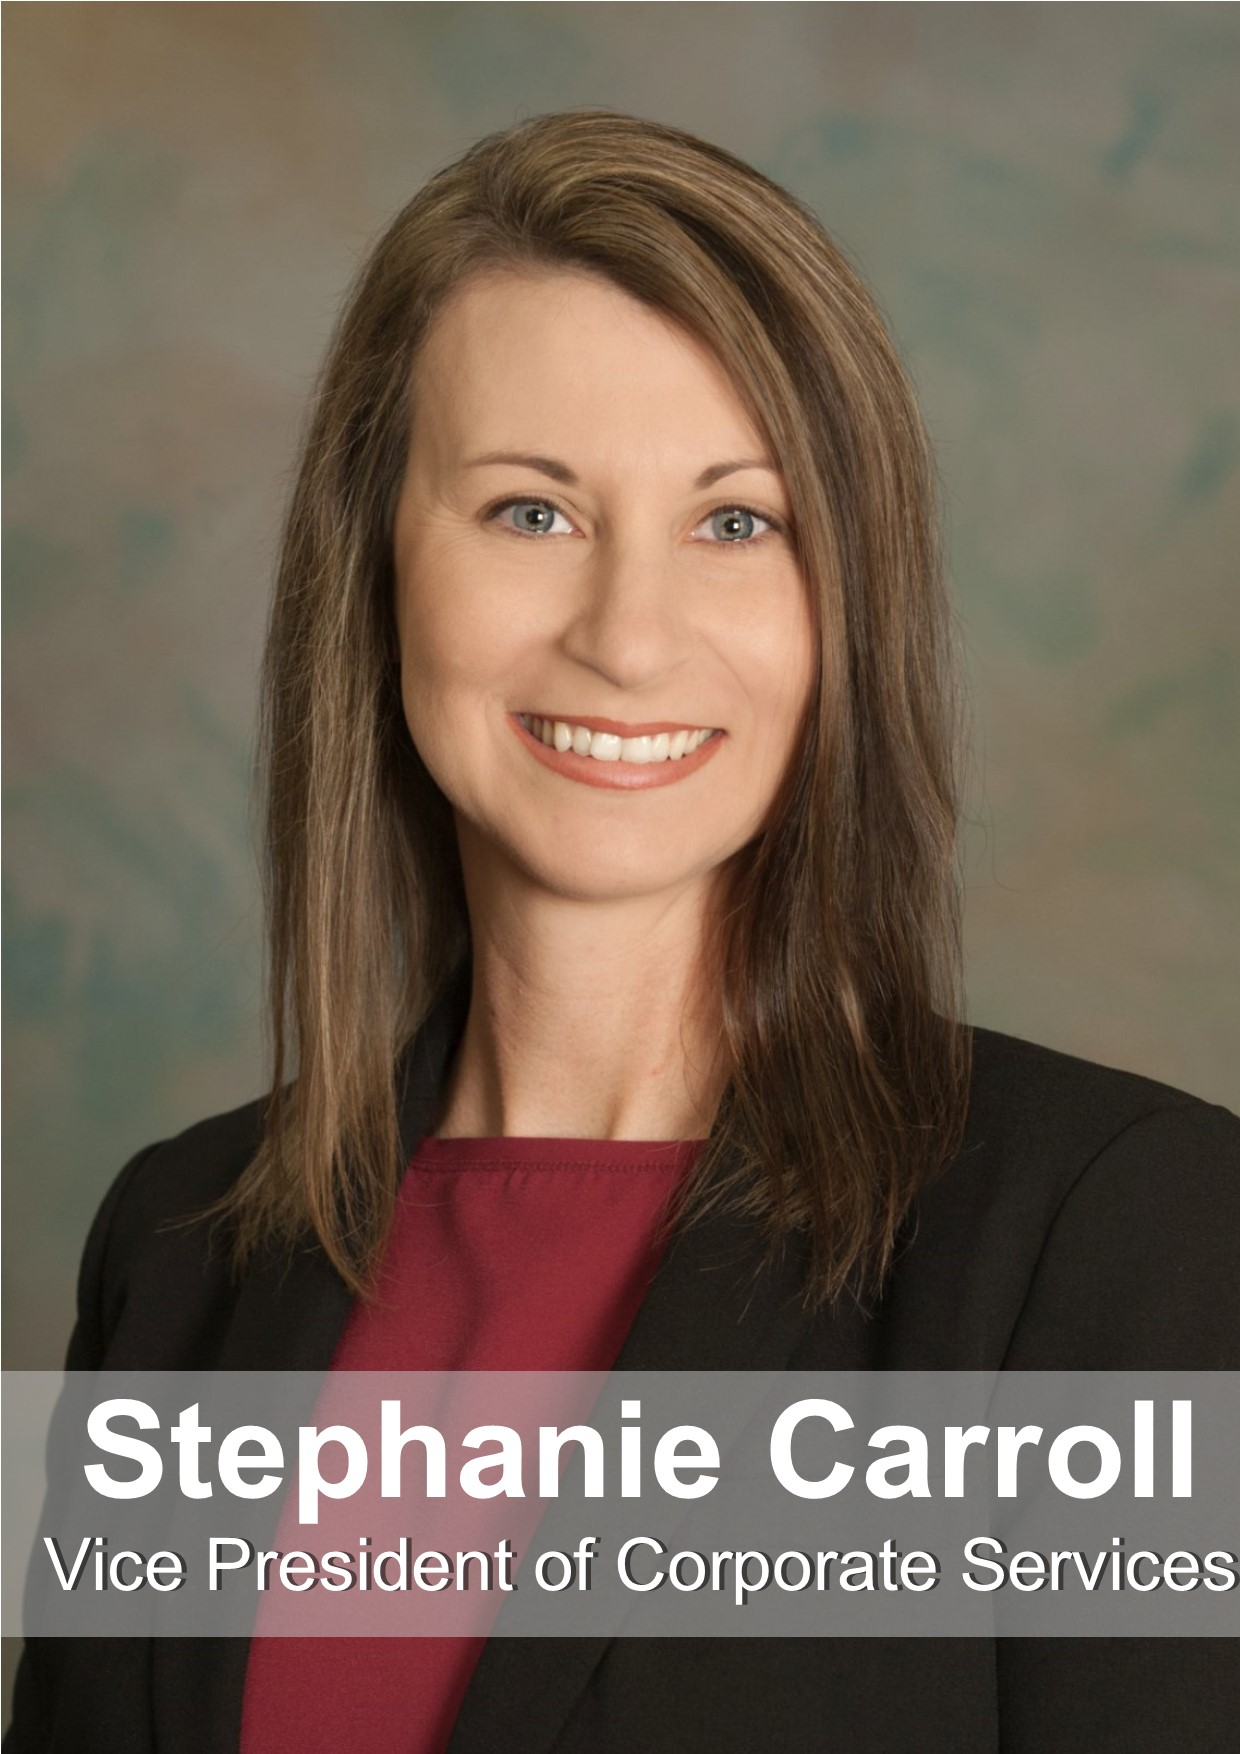 Stephanie Carroll Manager of Corporate Services